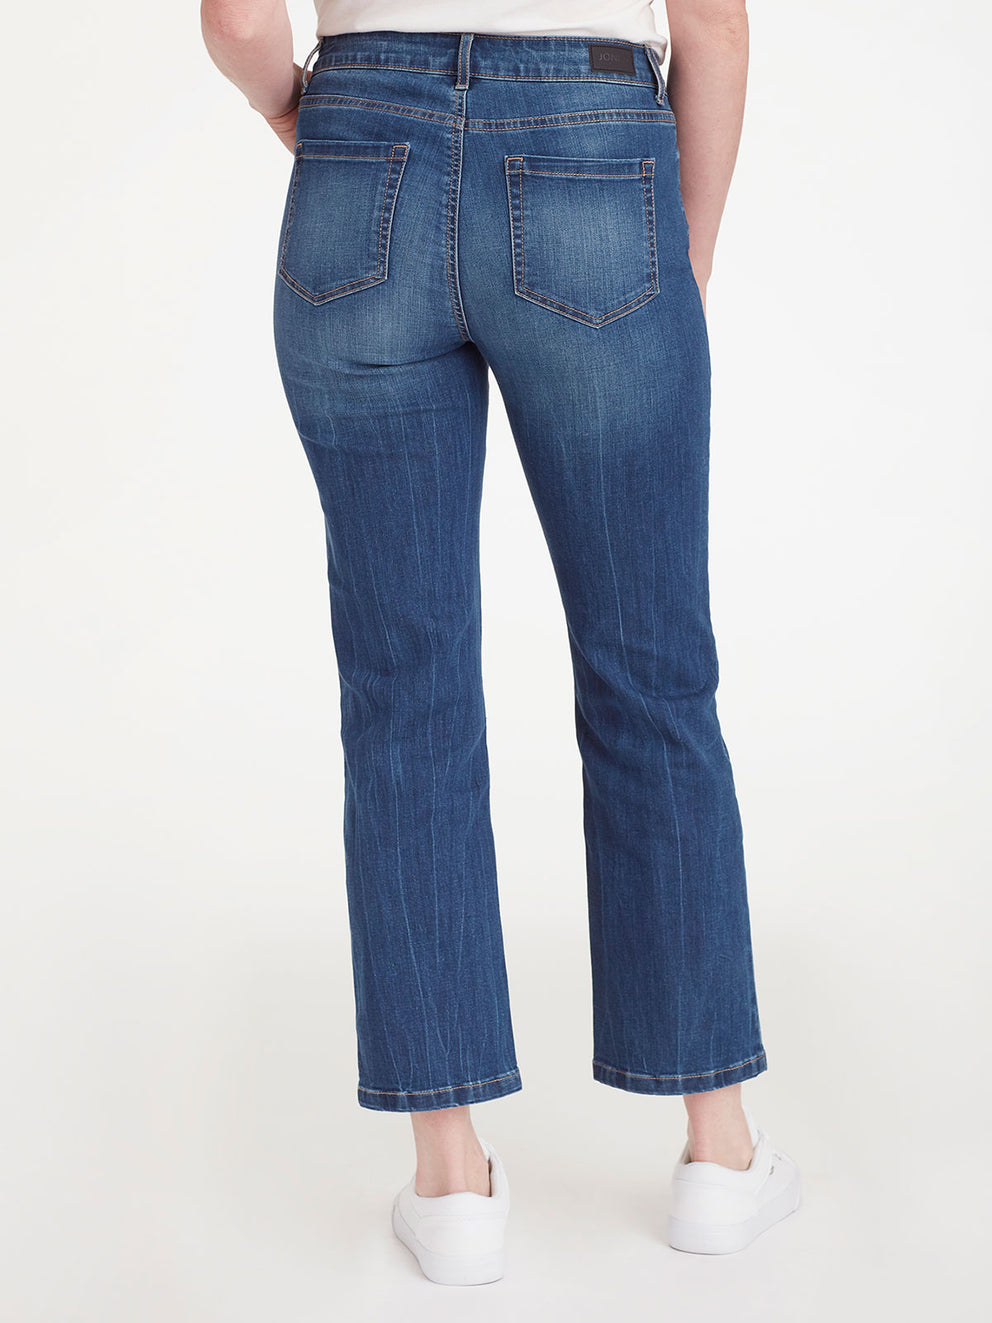 The Jones New York Lexington Montana Wash Ankle Jeans in color Montana Wash - Image Position 3